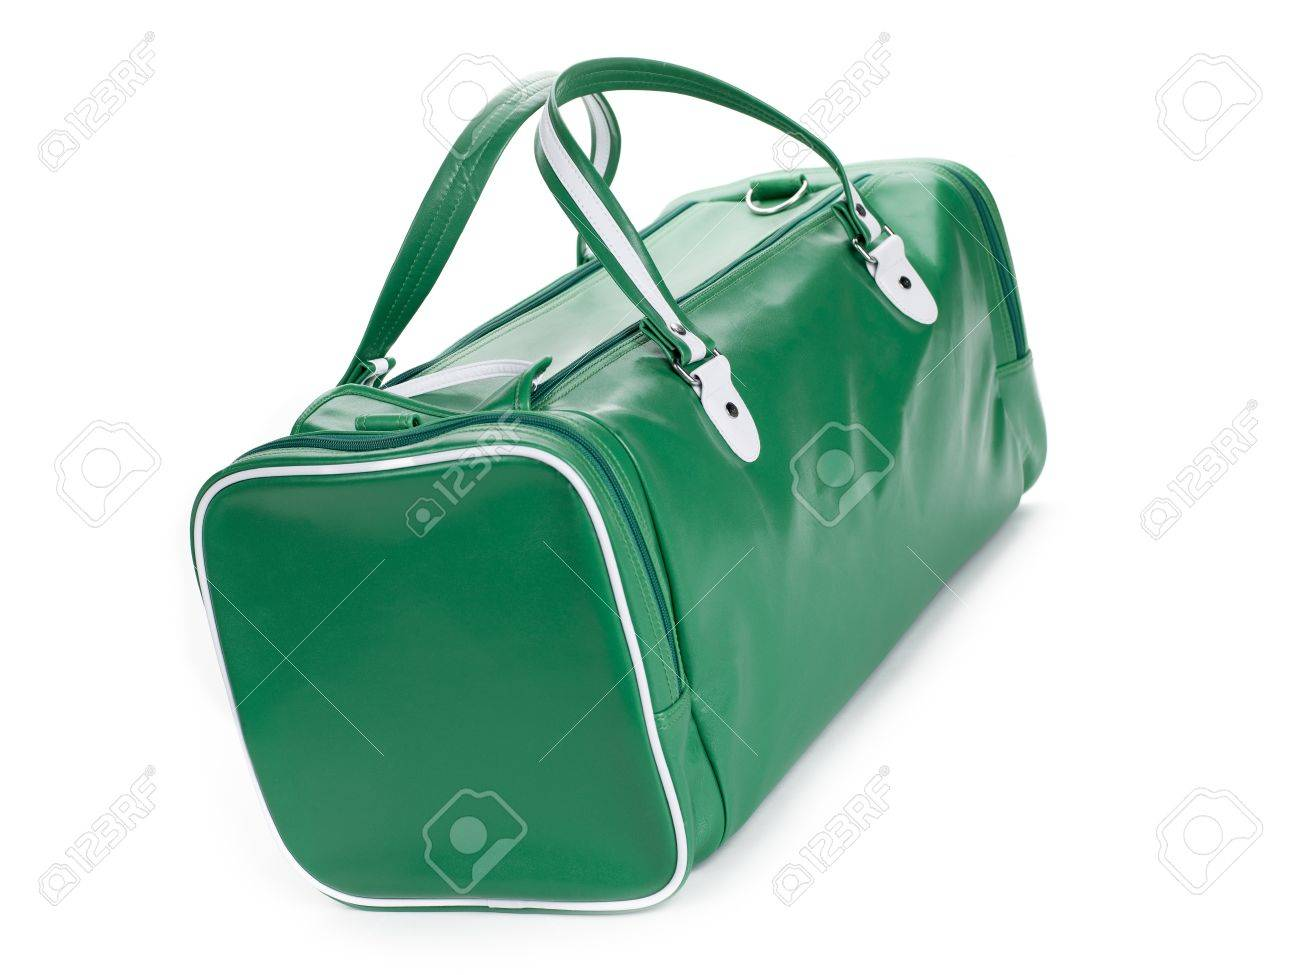 A green gym bag angled on a white background Stock Photo - 17339589 5d97a70eb